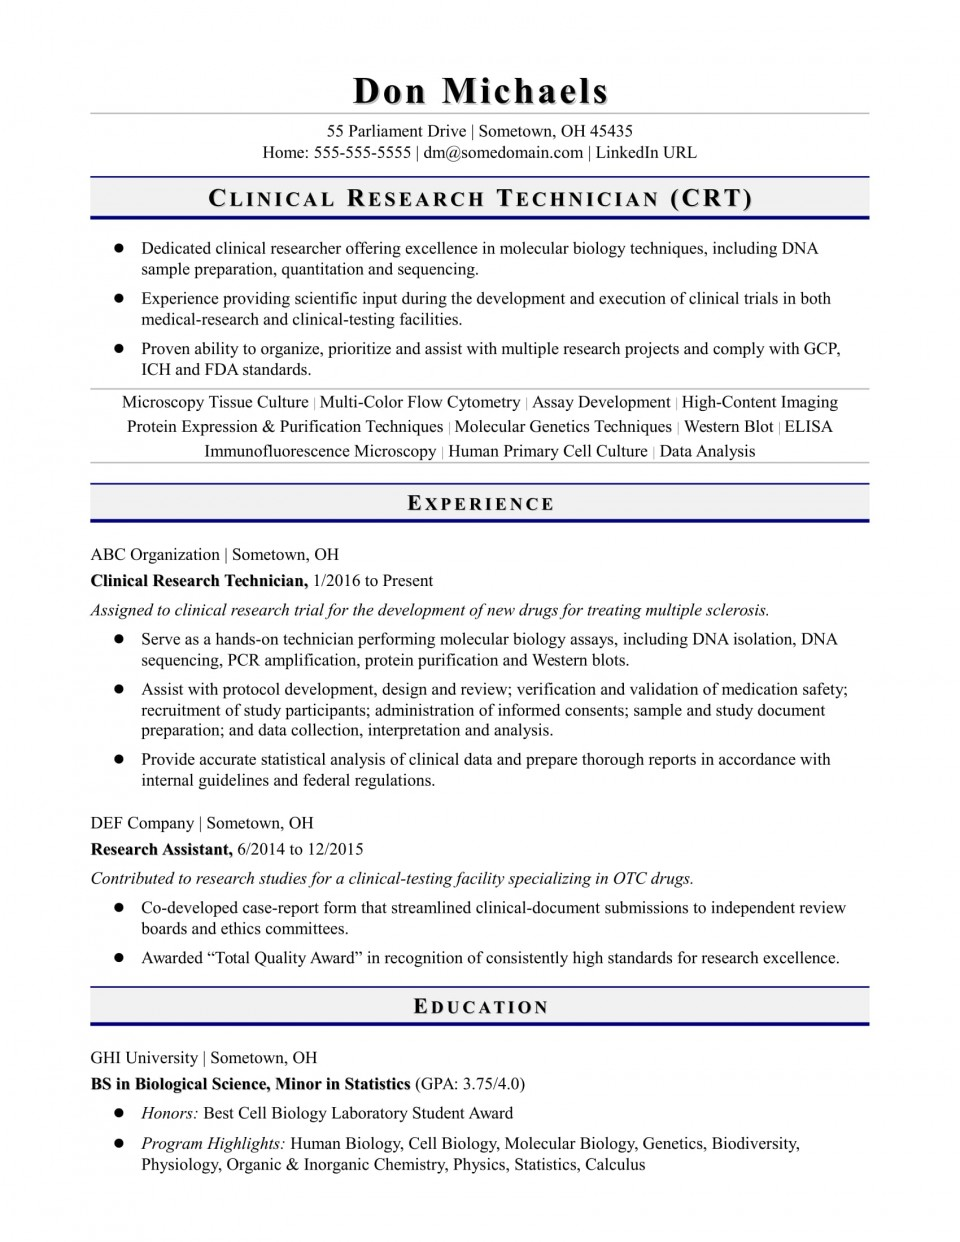 019 Research Technician Entry Level Biology Paper Remarkable Sample Format Example 960